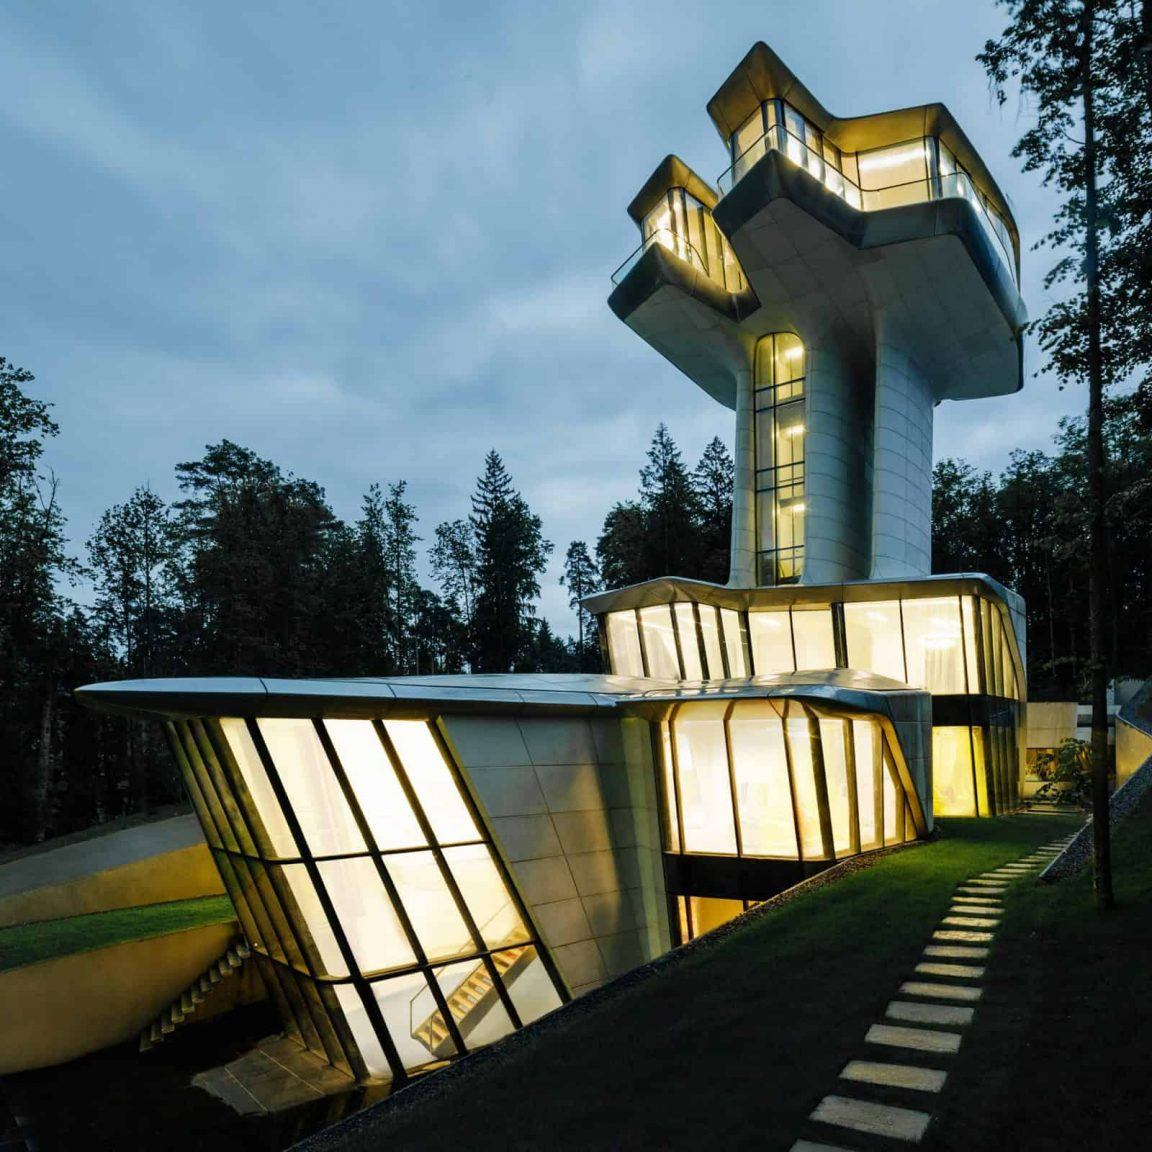 New photographs Reveal Zaha Hadid's Only Completed Private Residence -zaha hadid, russia, gohome, forest, buildings